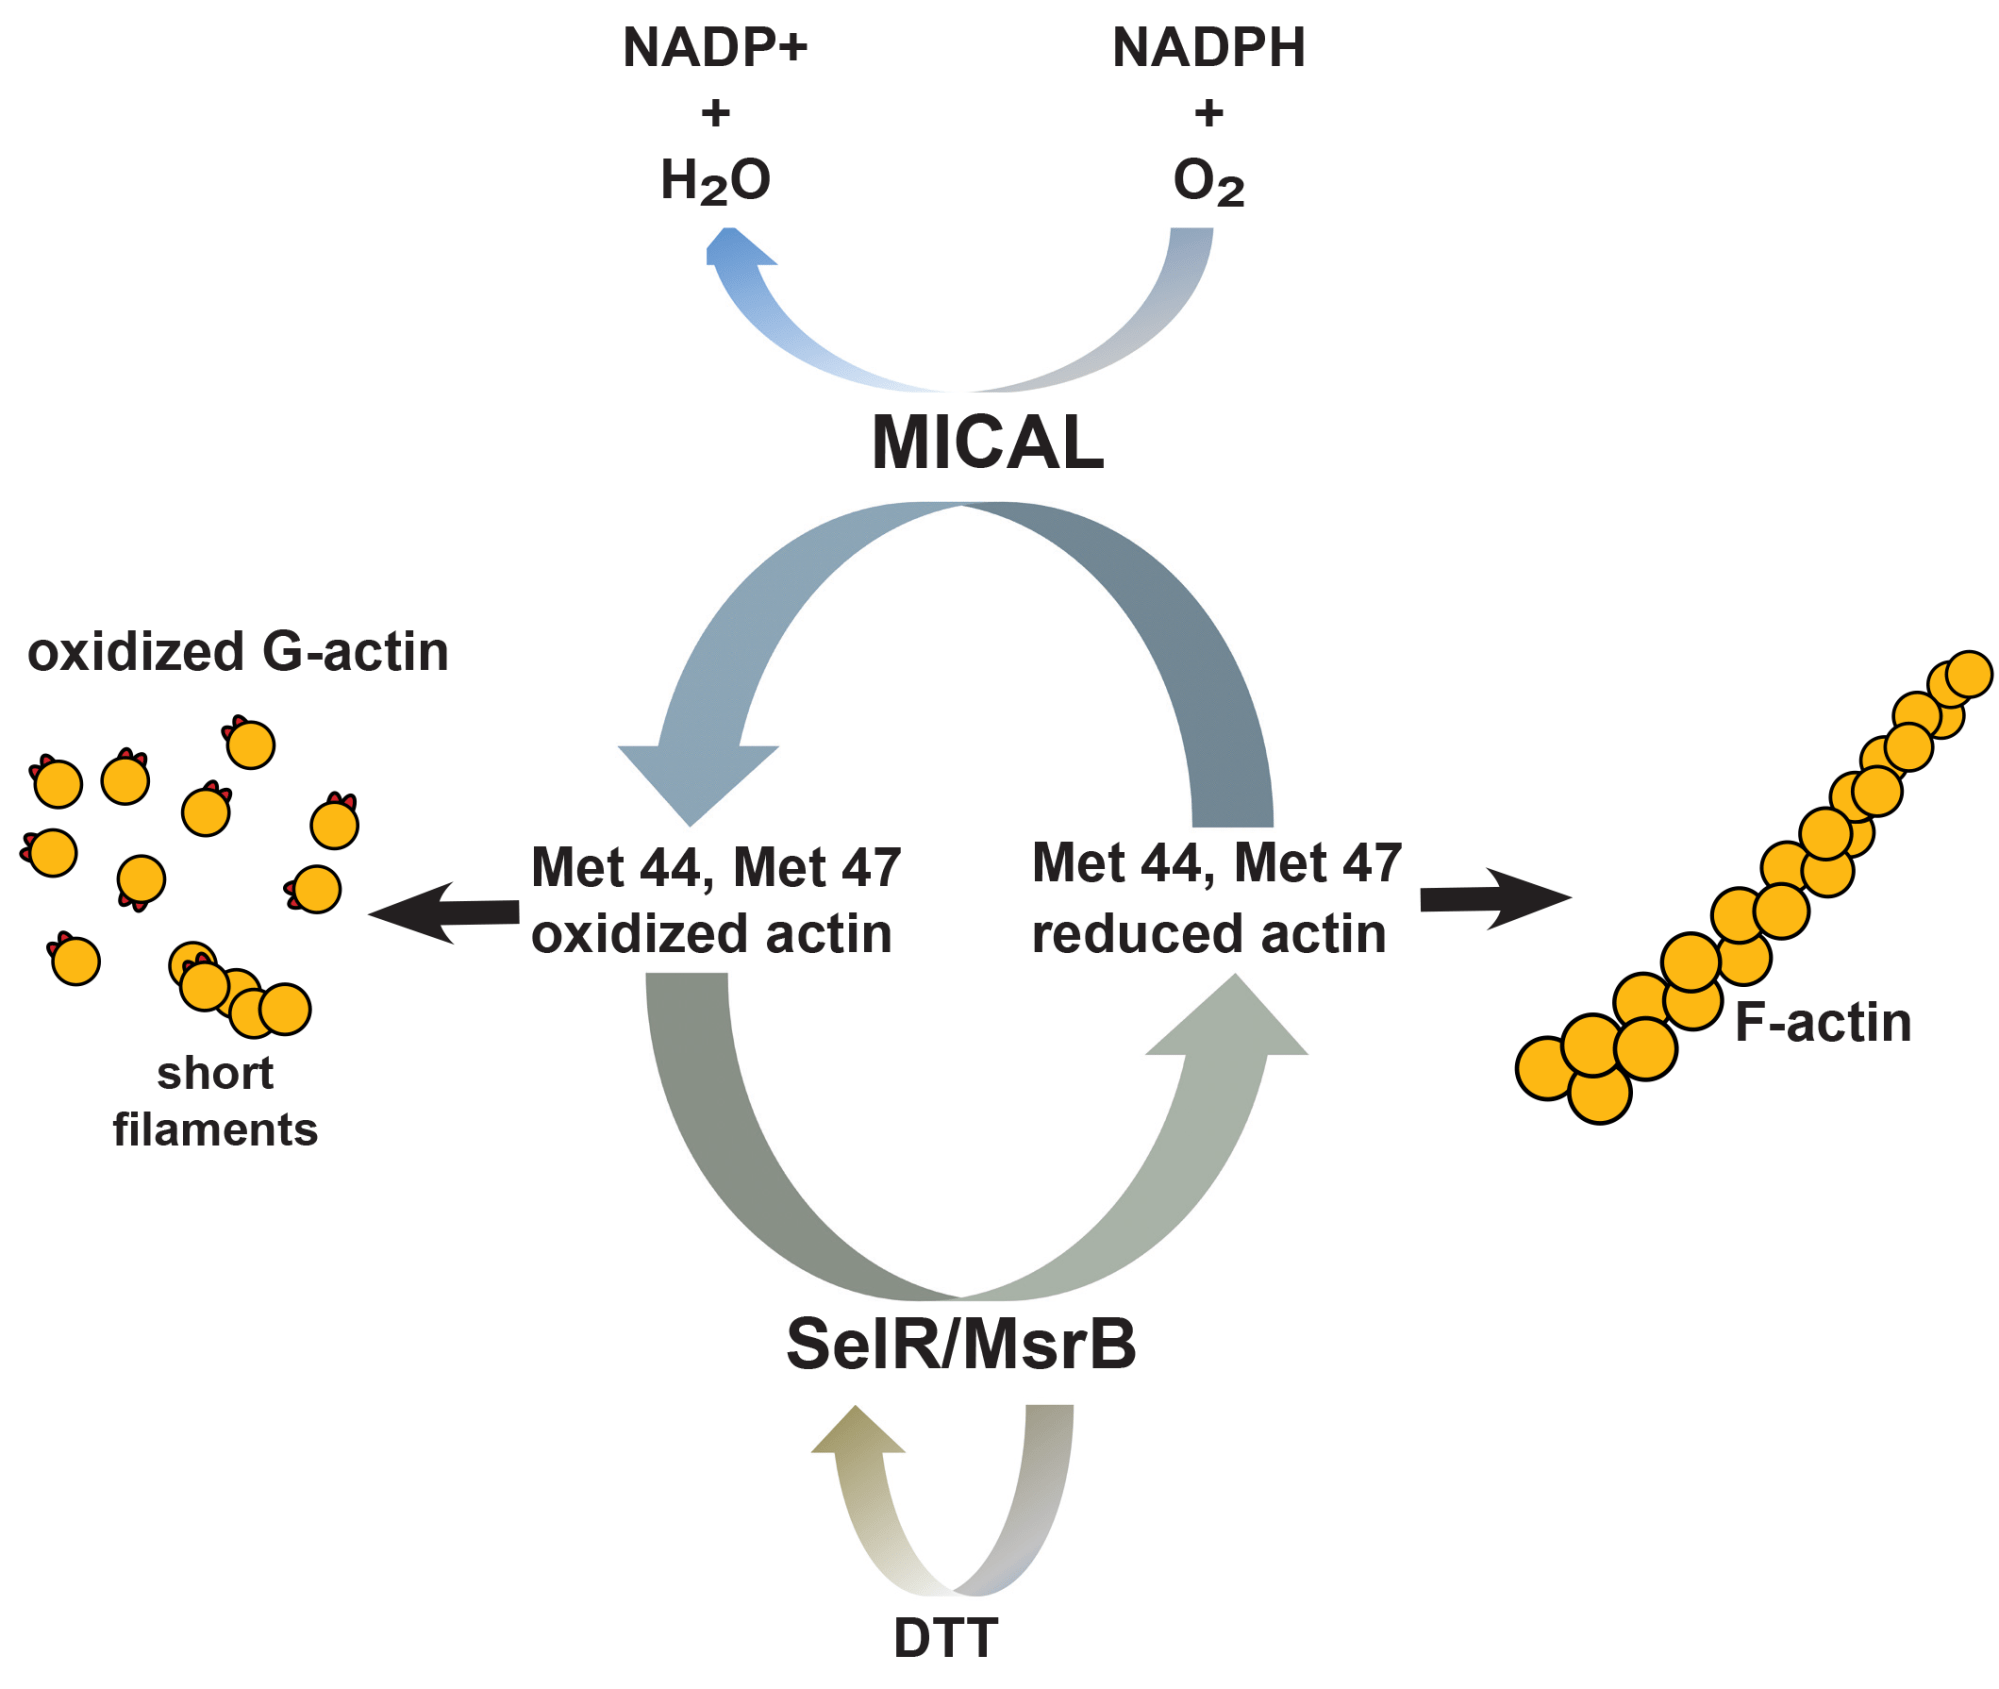 hight resolution of figure legend a schematic diagram of the enzymes that control the physiological and reversible oxidation and reduction of methionines 44 and 47 of actin